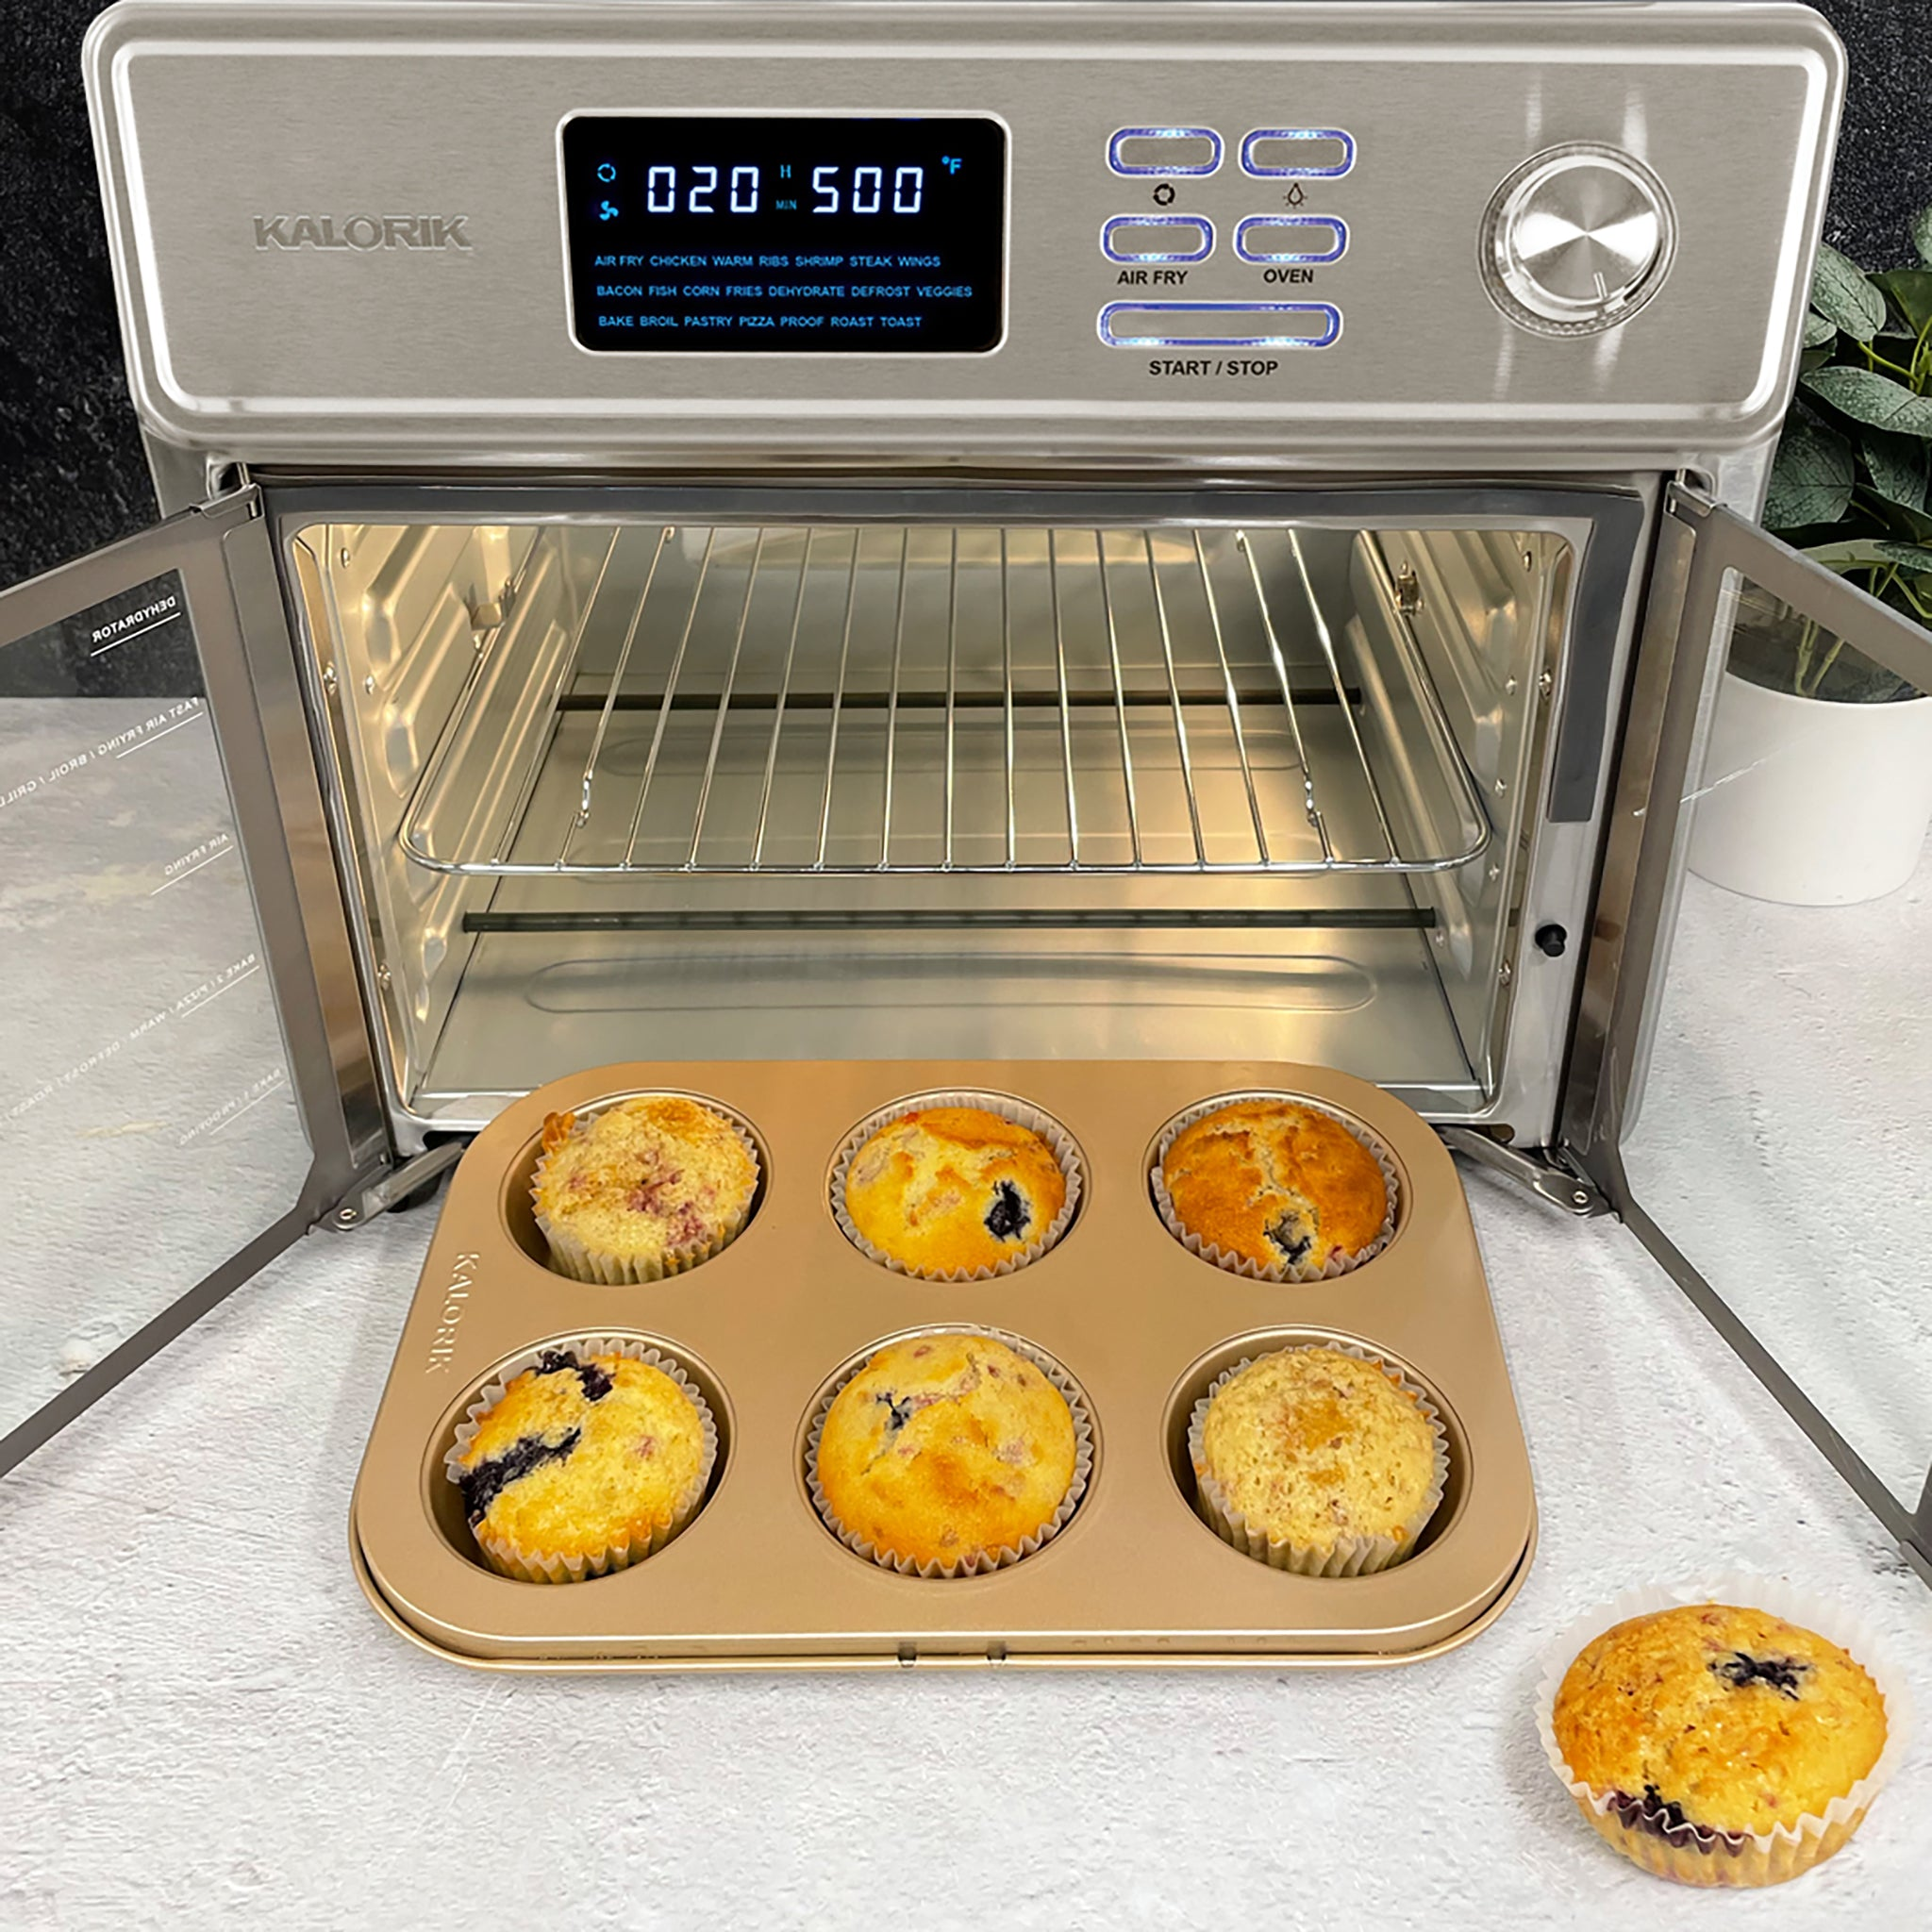 Blueberry muffins in the Kalorik MAXX Air Fryer Oven